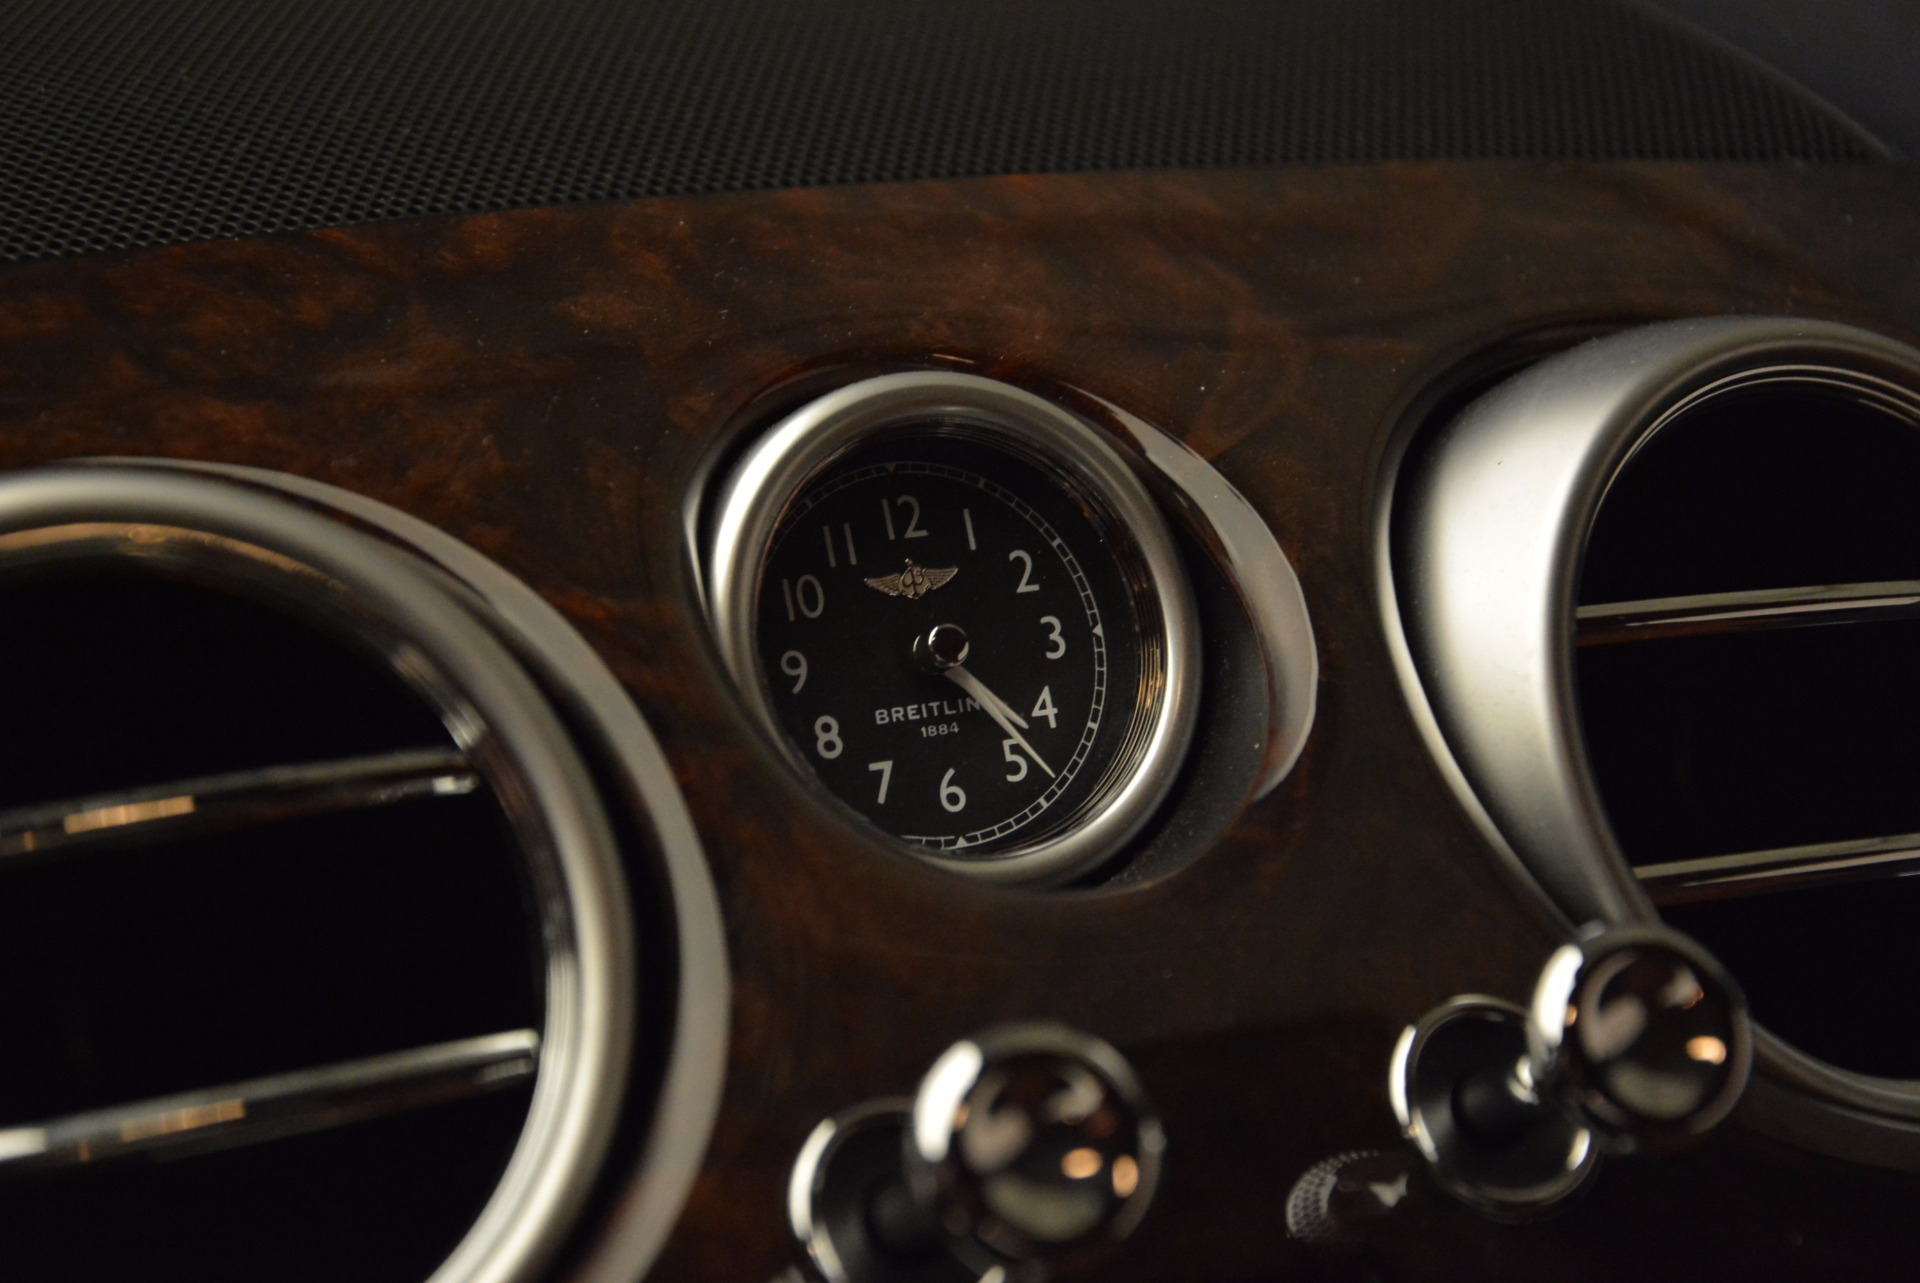 Used 2014 Bentley Continental GT W12 For Sale In Westport, CT 1845_p26